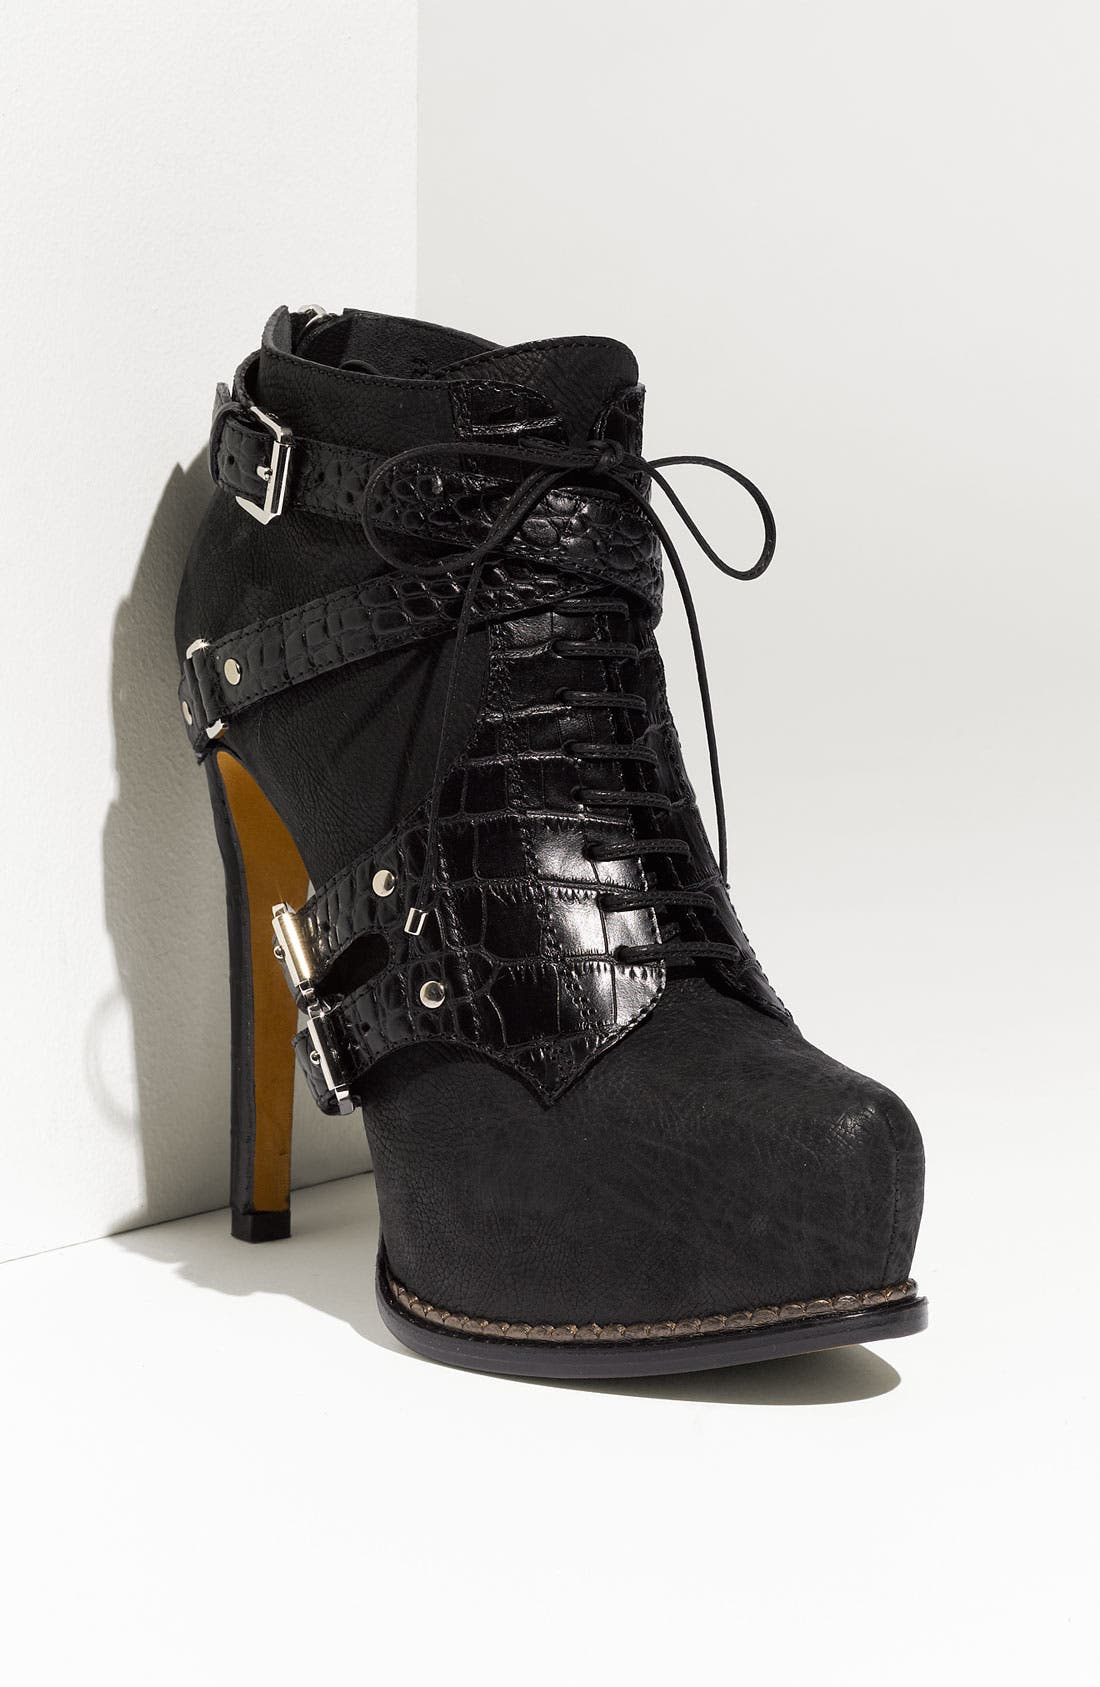 Alternate Image 1 Selected - Dior 'Guetre' Platform Bootie